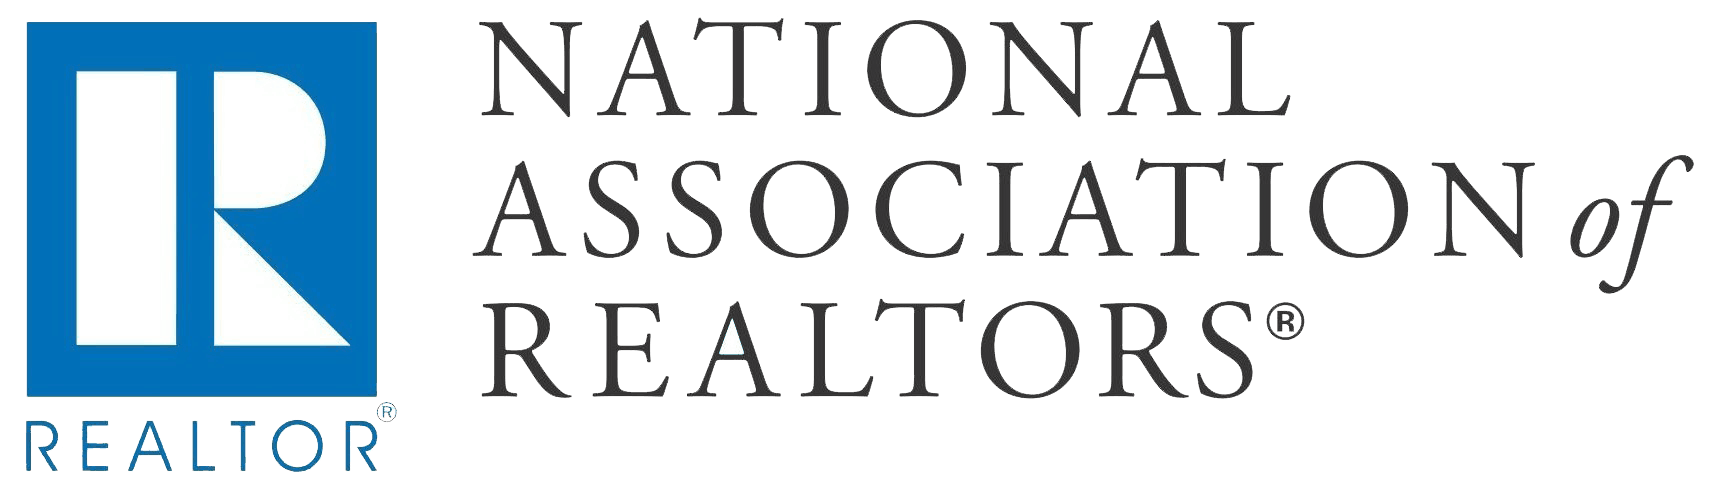 National Association of REALTORS ®